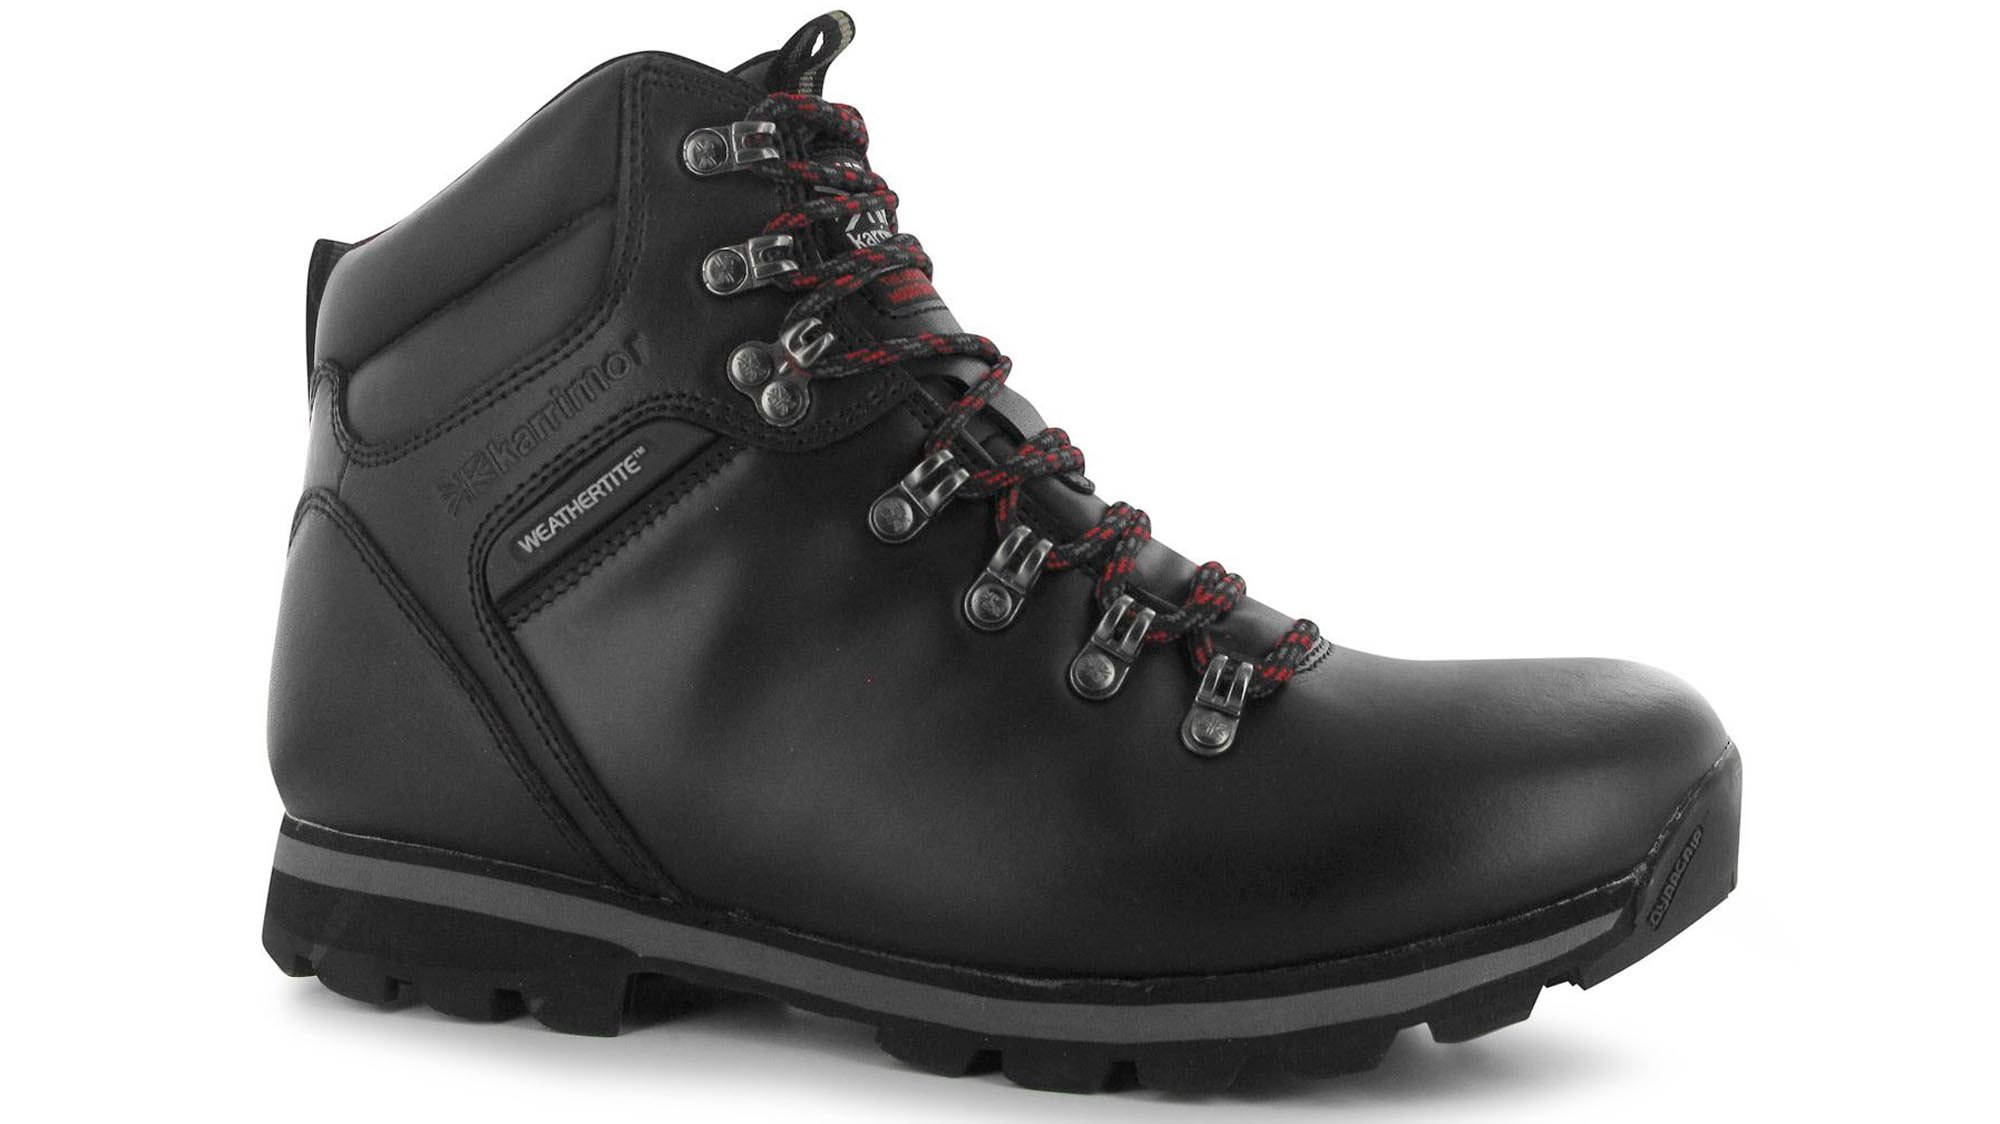 c9d547ae5a1 Best hiking boots 2019: Walking boots for men and women from £38 ...